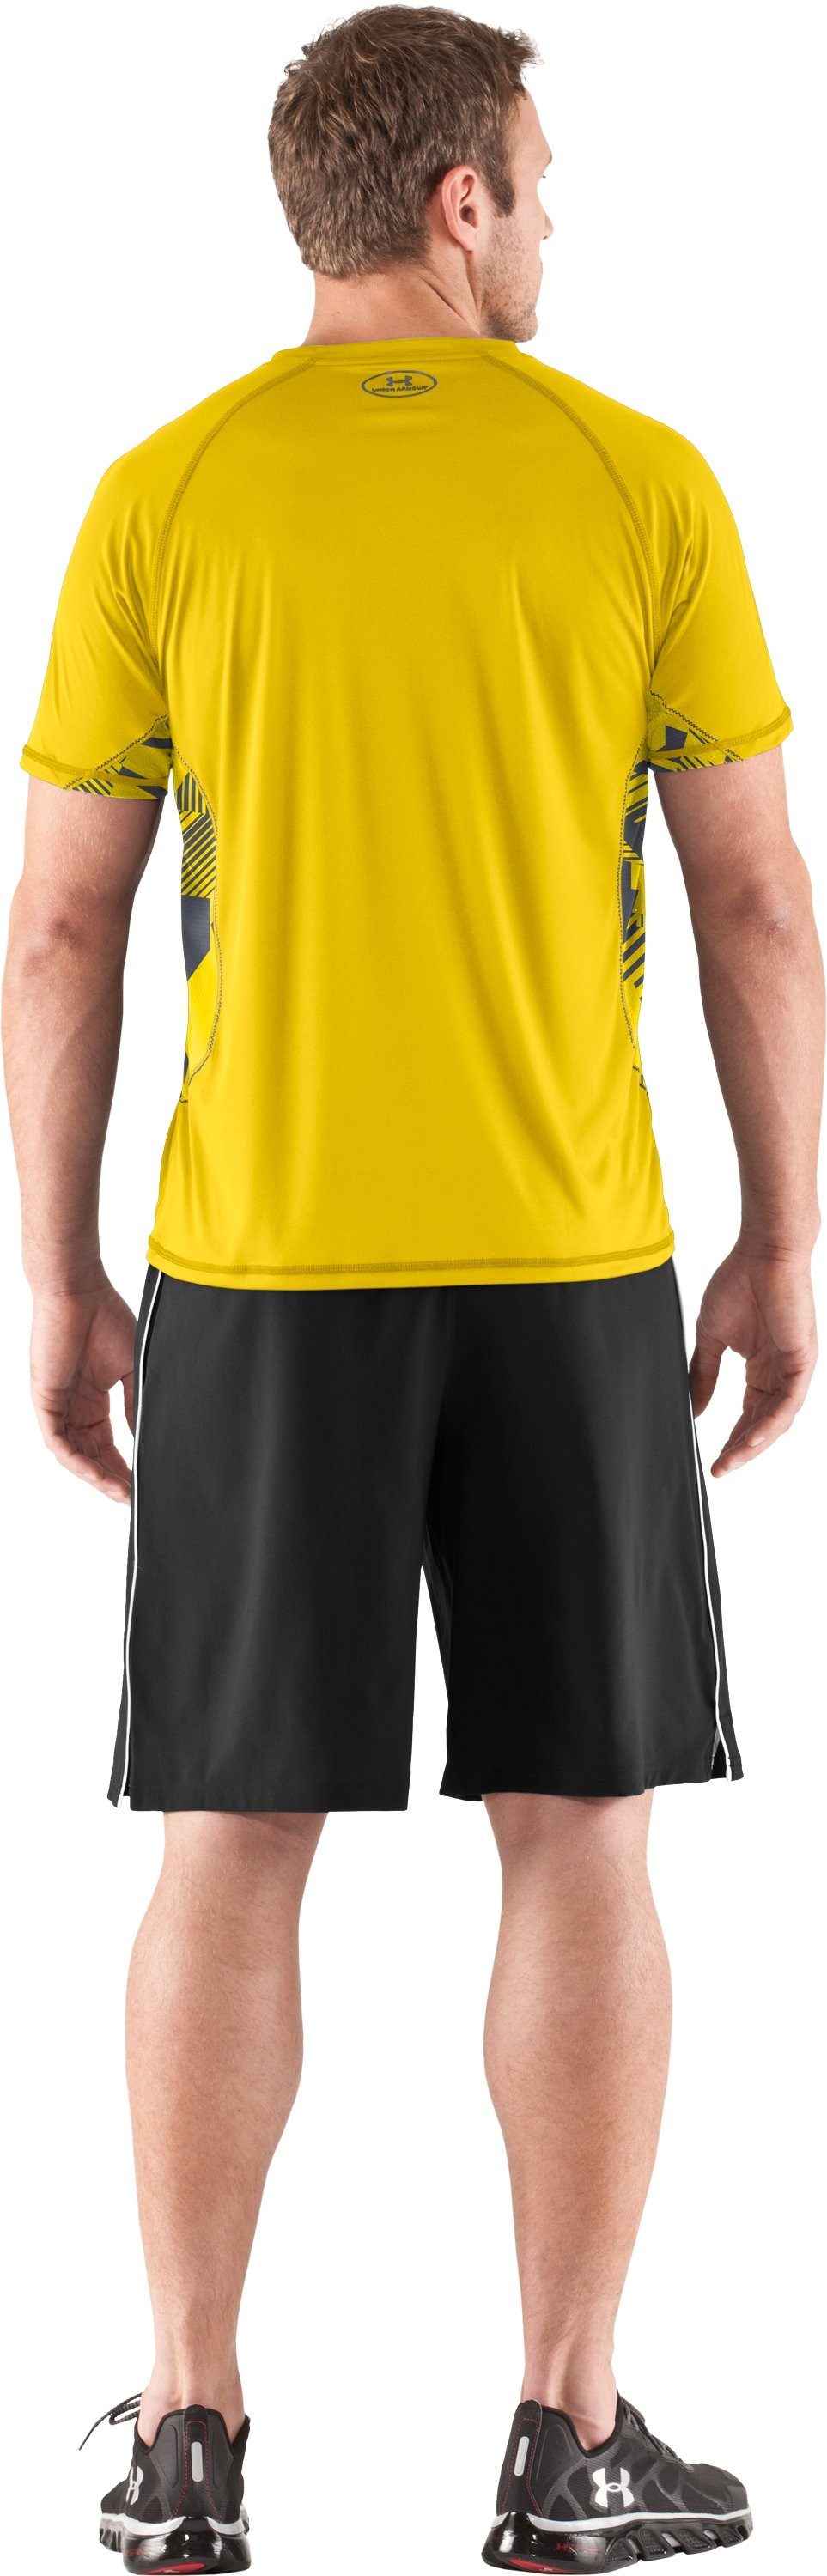 Men's HeatGear® Flyweight Short Sleeve, Taxi, Back